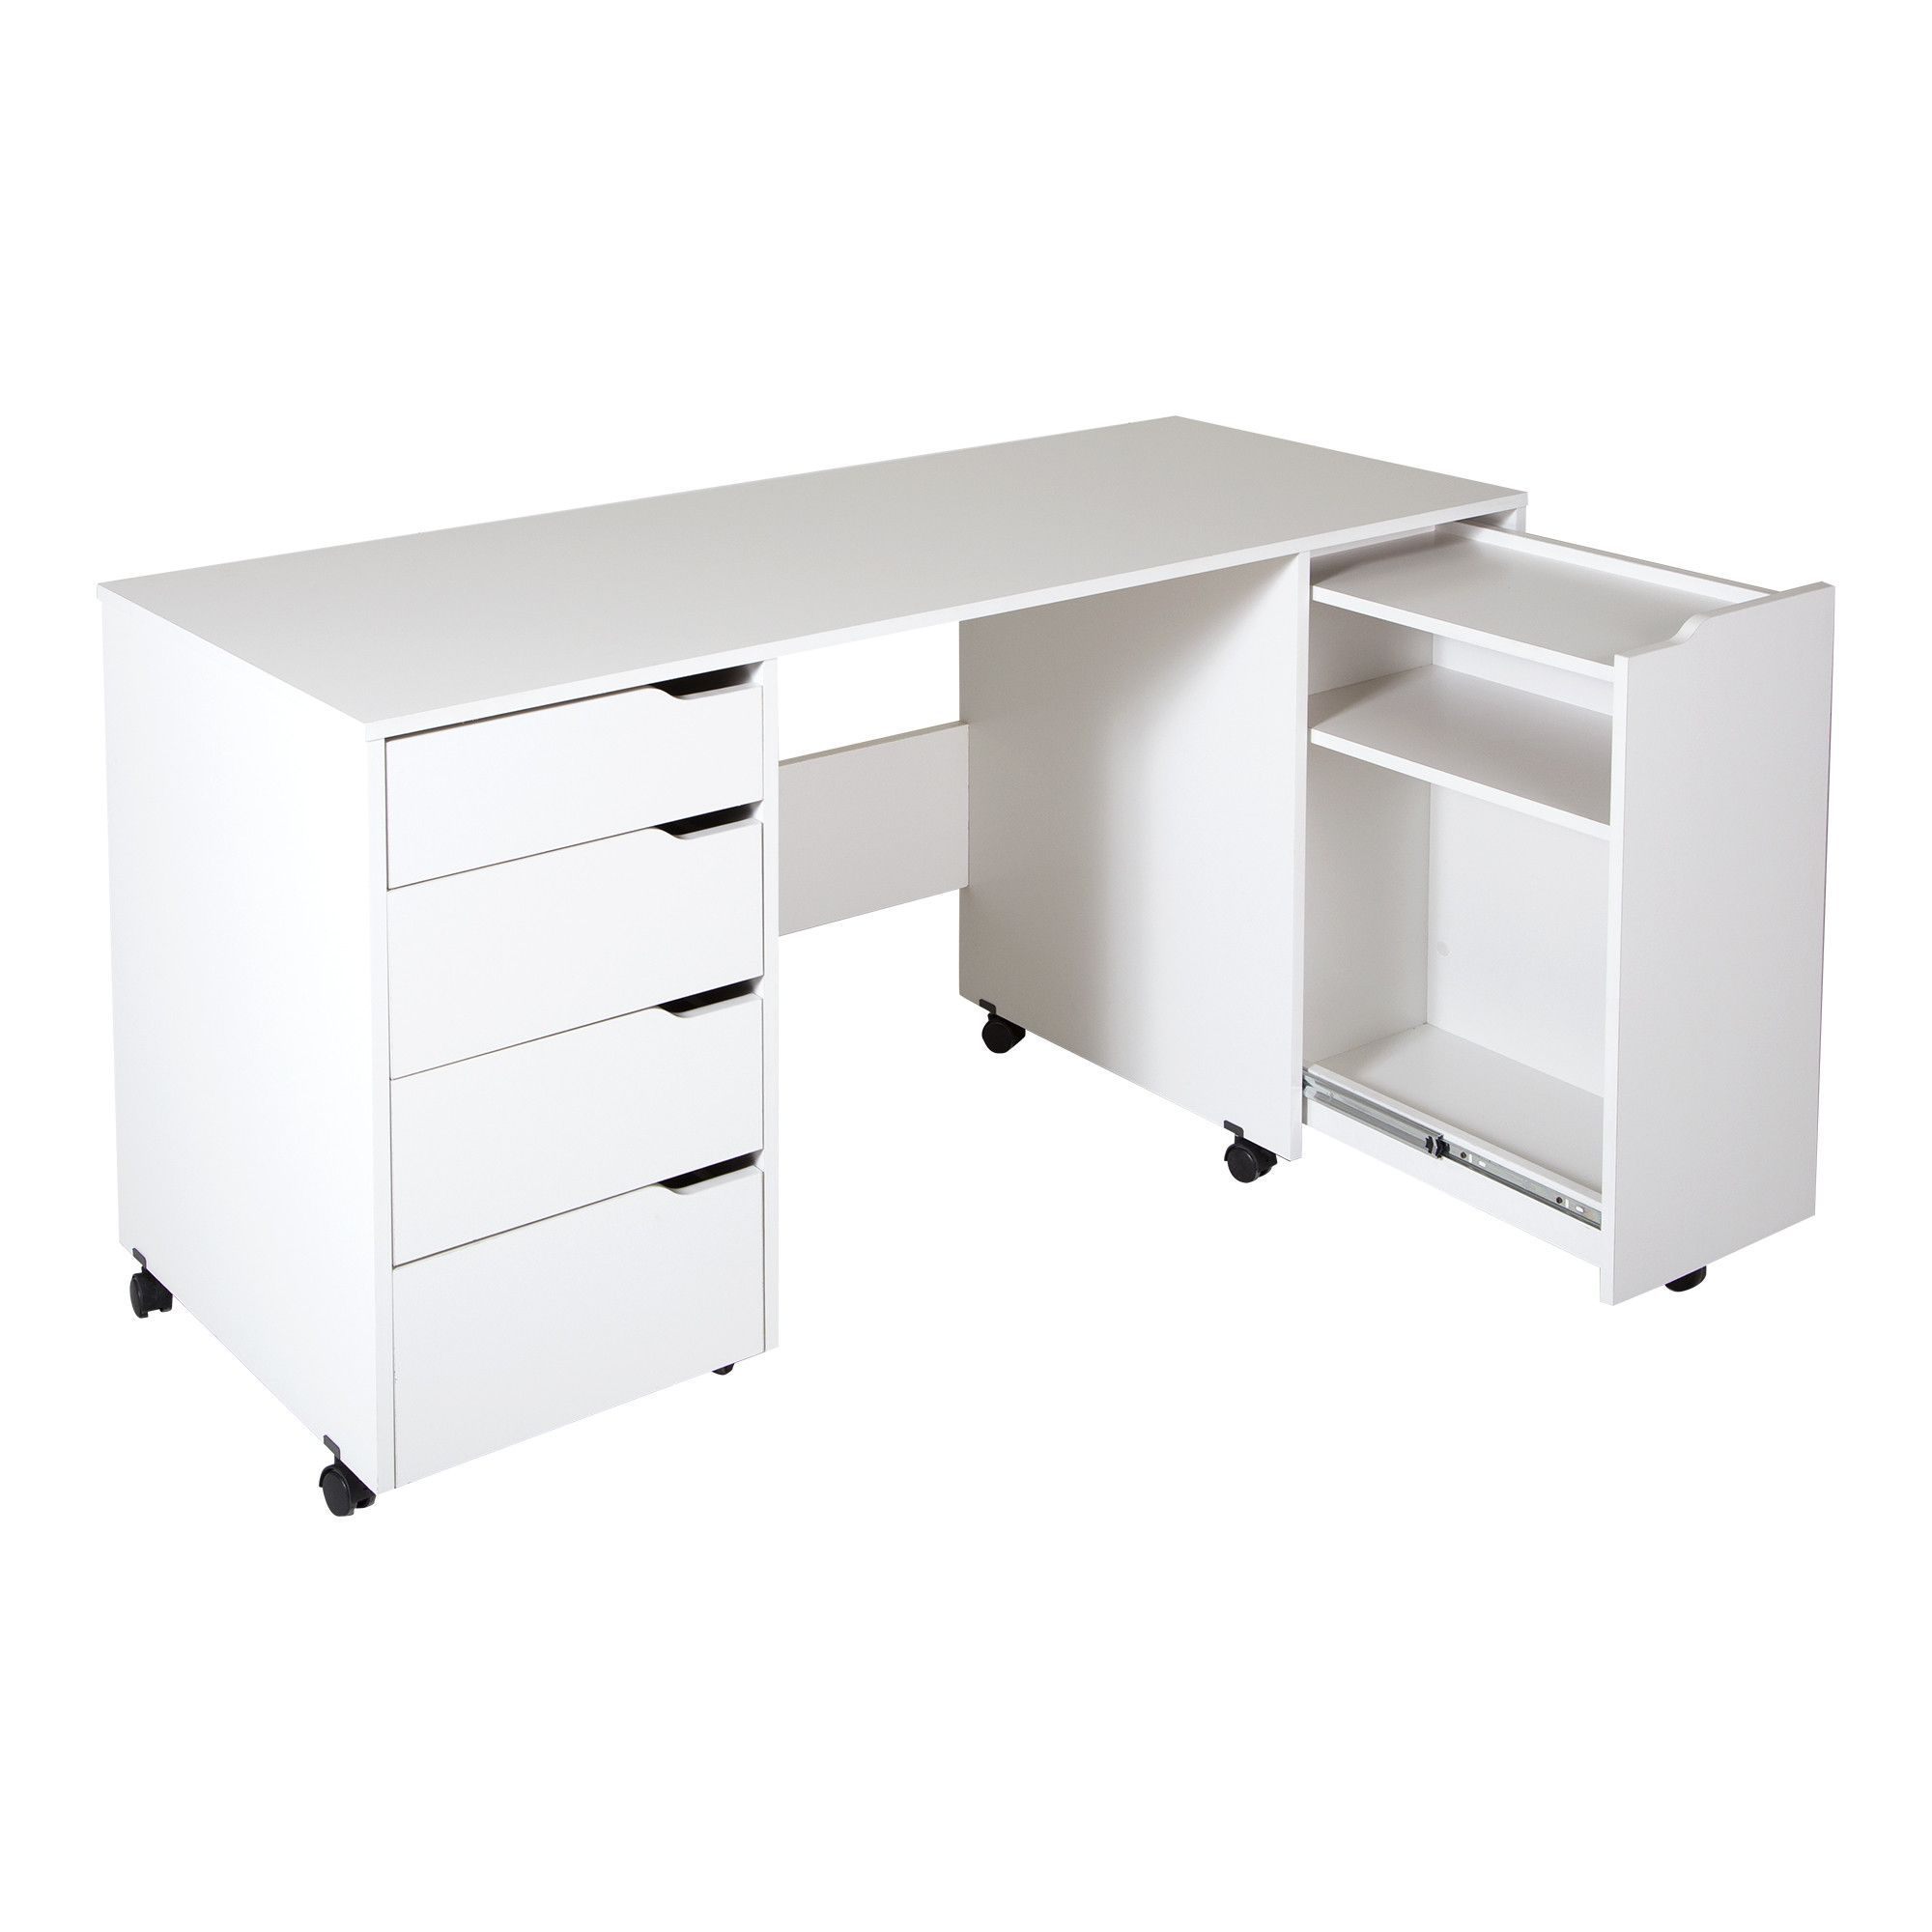 Sewing craft table with storage - Sewing Craft Table On Wheels